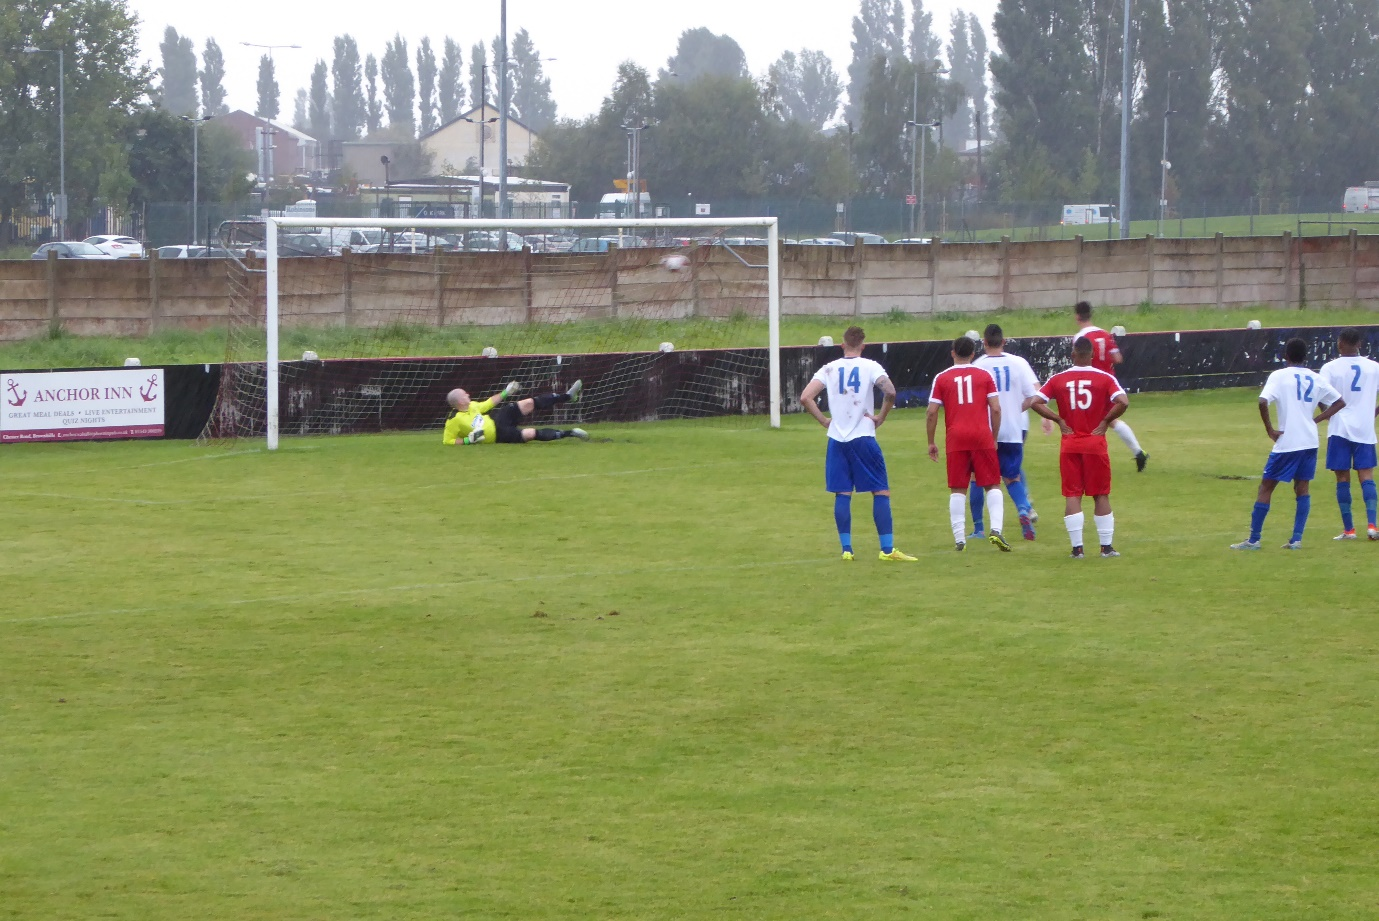 Superbly taken penalty shot brings the Wood's second-half goal.